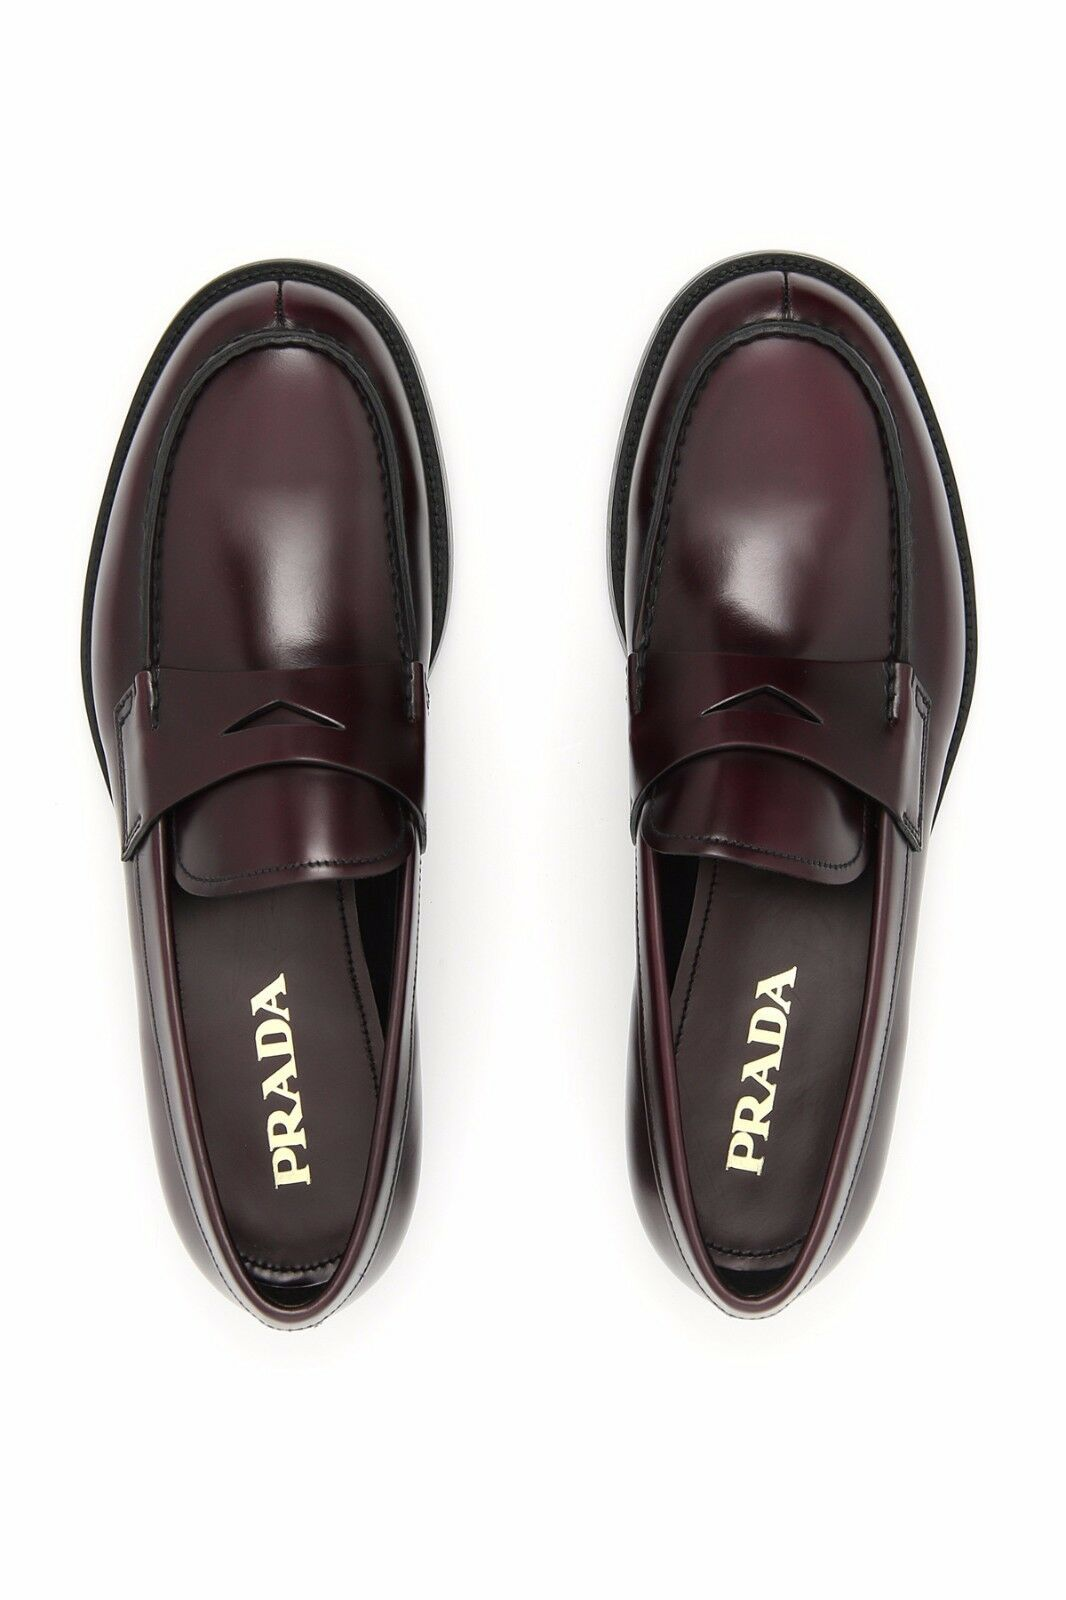 Mens Prada Loafers shoes, Size 10, Gordovan